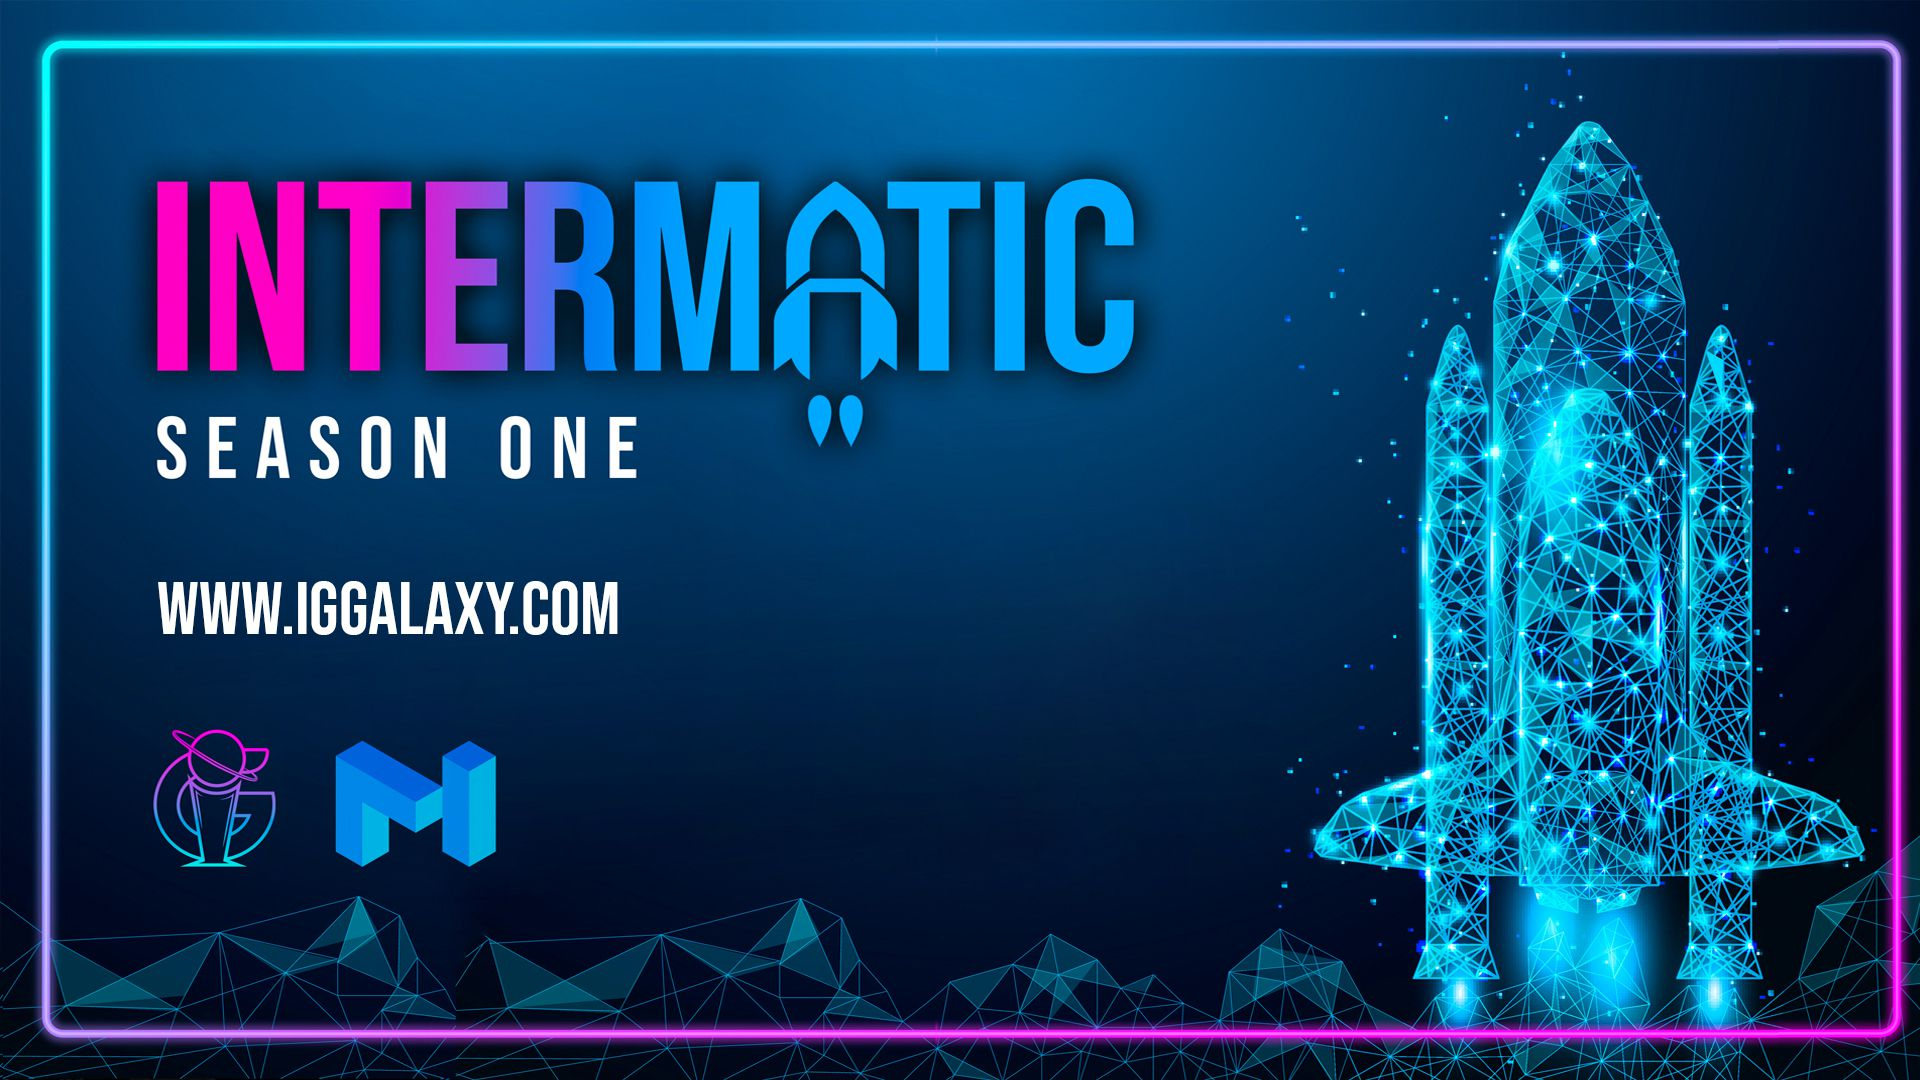 Season 1 of our InterMatic Competition Series has brought in over 6,600 gamers to IGGalaxy!